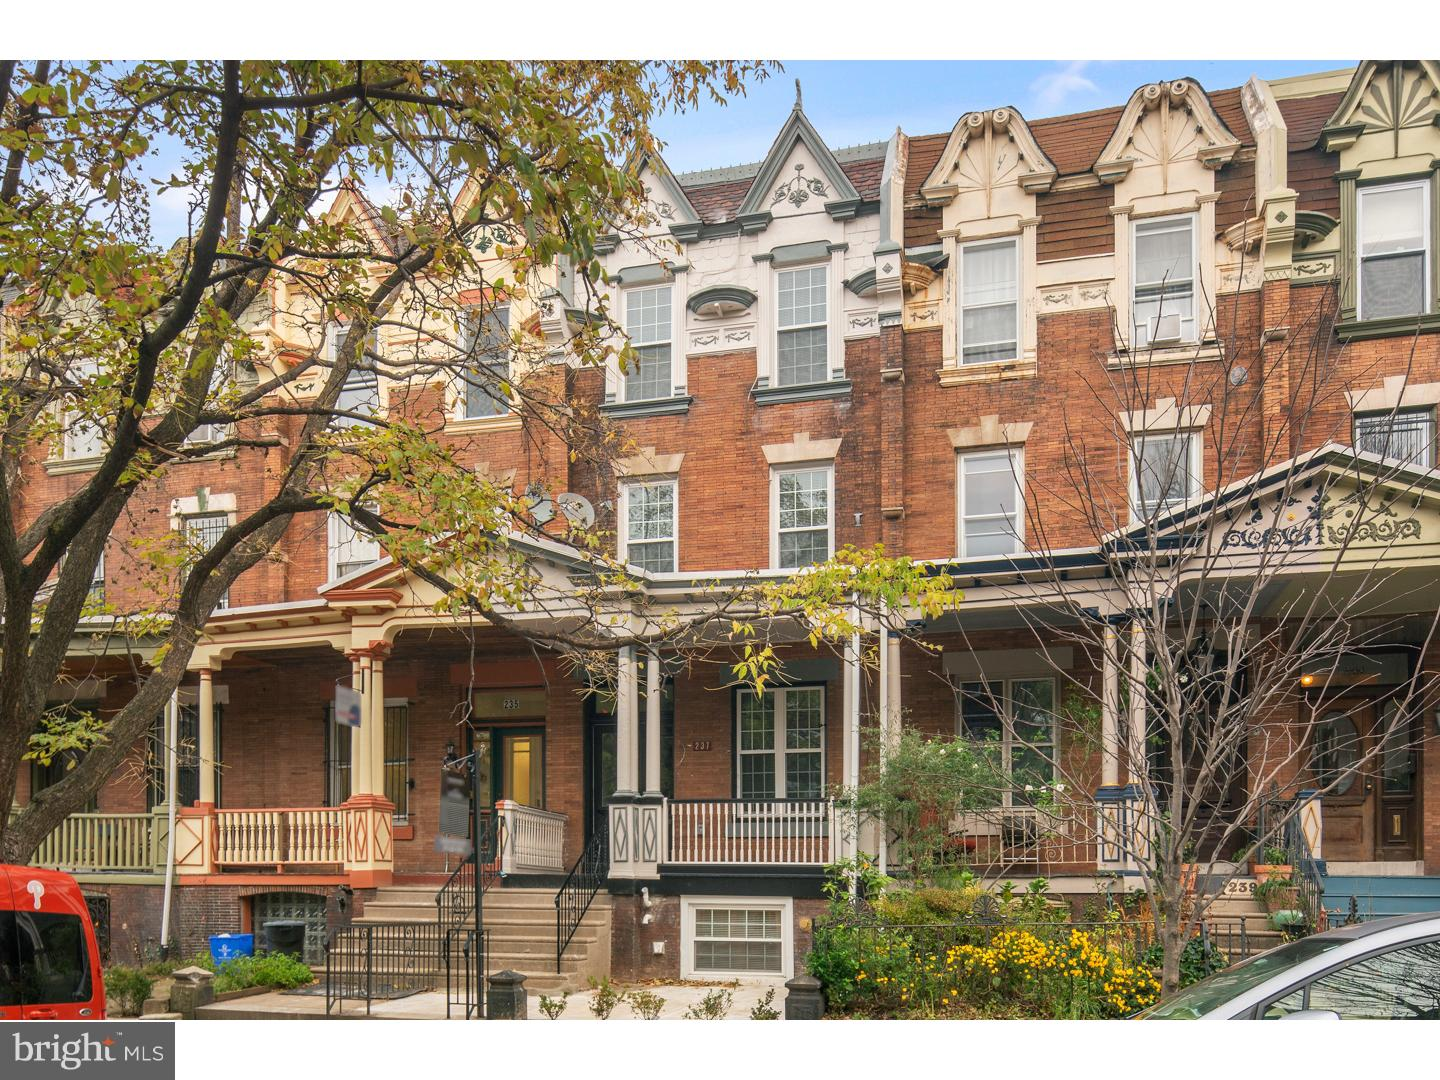 237 S 45TH STREET, PHILADELPHIA, PA 19104